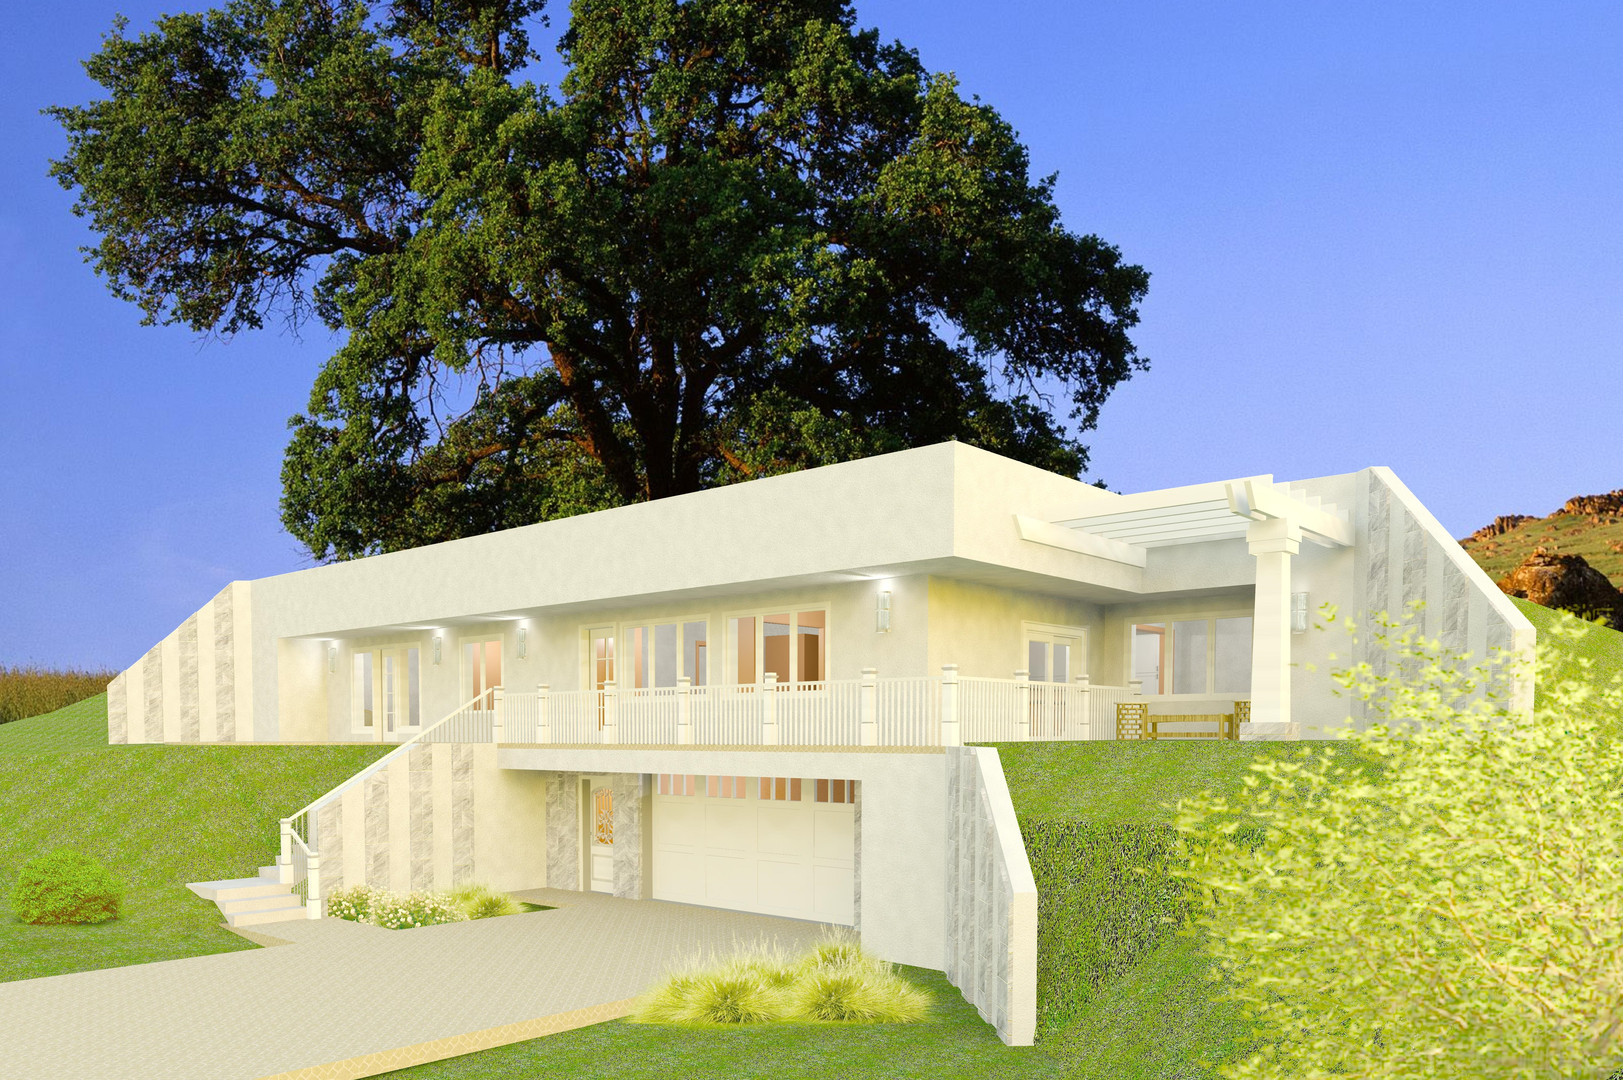 Earth HomeEarth Sheltered HomesEarth Homes For SaleEarth Home Plans - Earth home designs